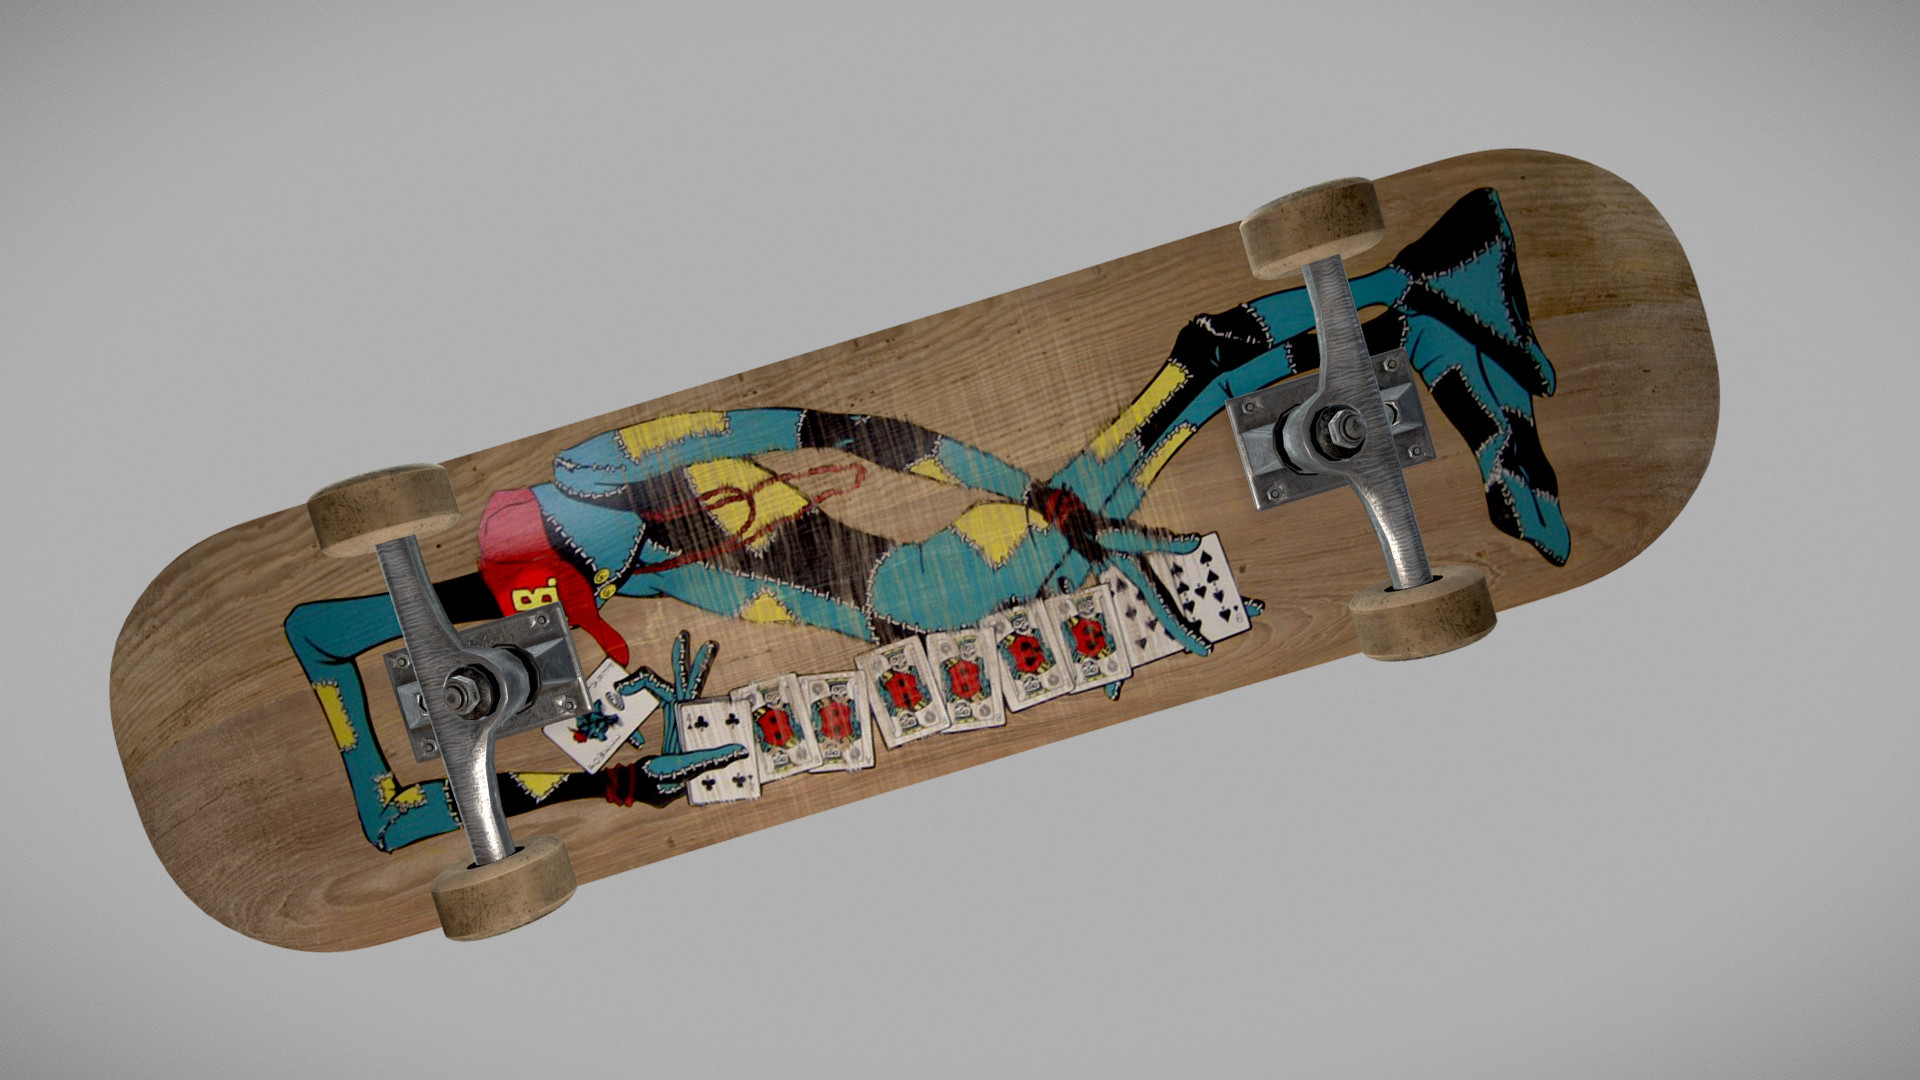 screenshot of sketchfab model